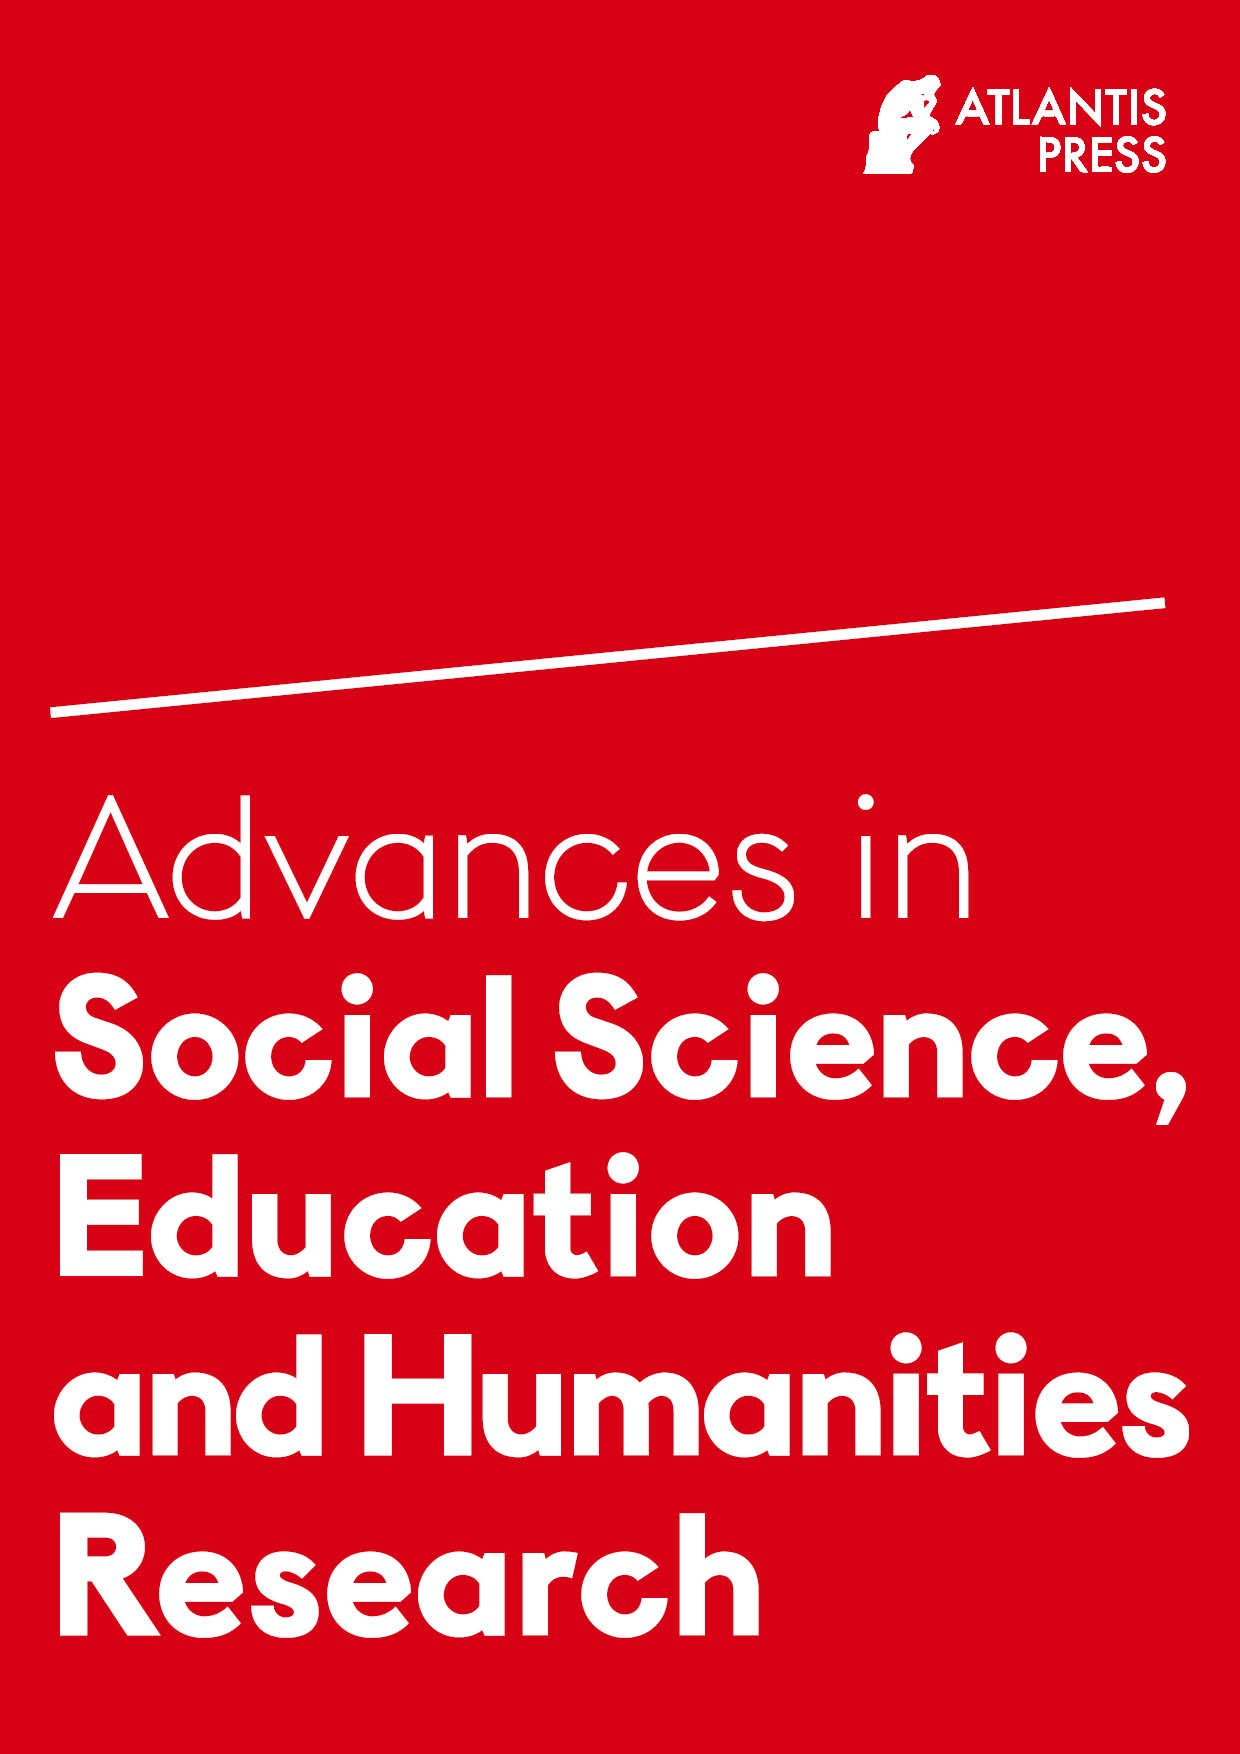 Advances In Social Science Education And Humanities Research Atlantis Press